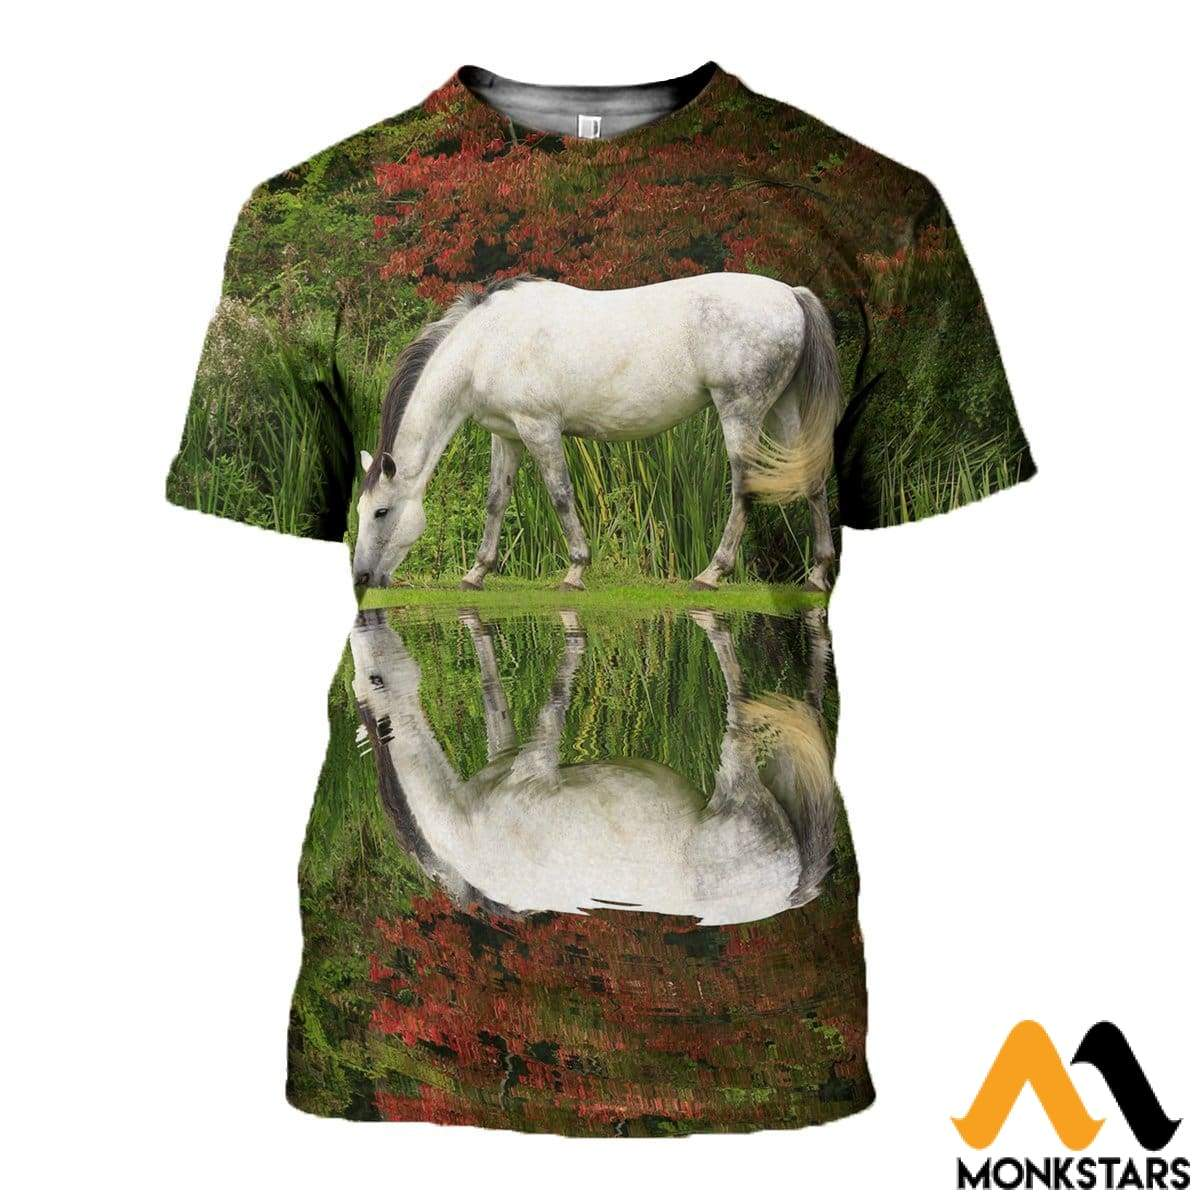 3D All Over Printed Horse Shirts And Shorts T-Shirt / Xs Clothes